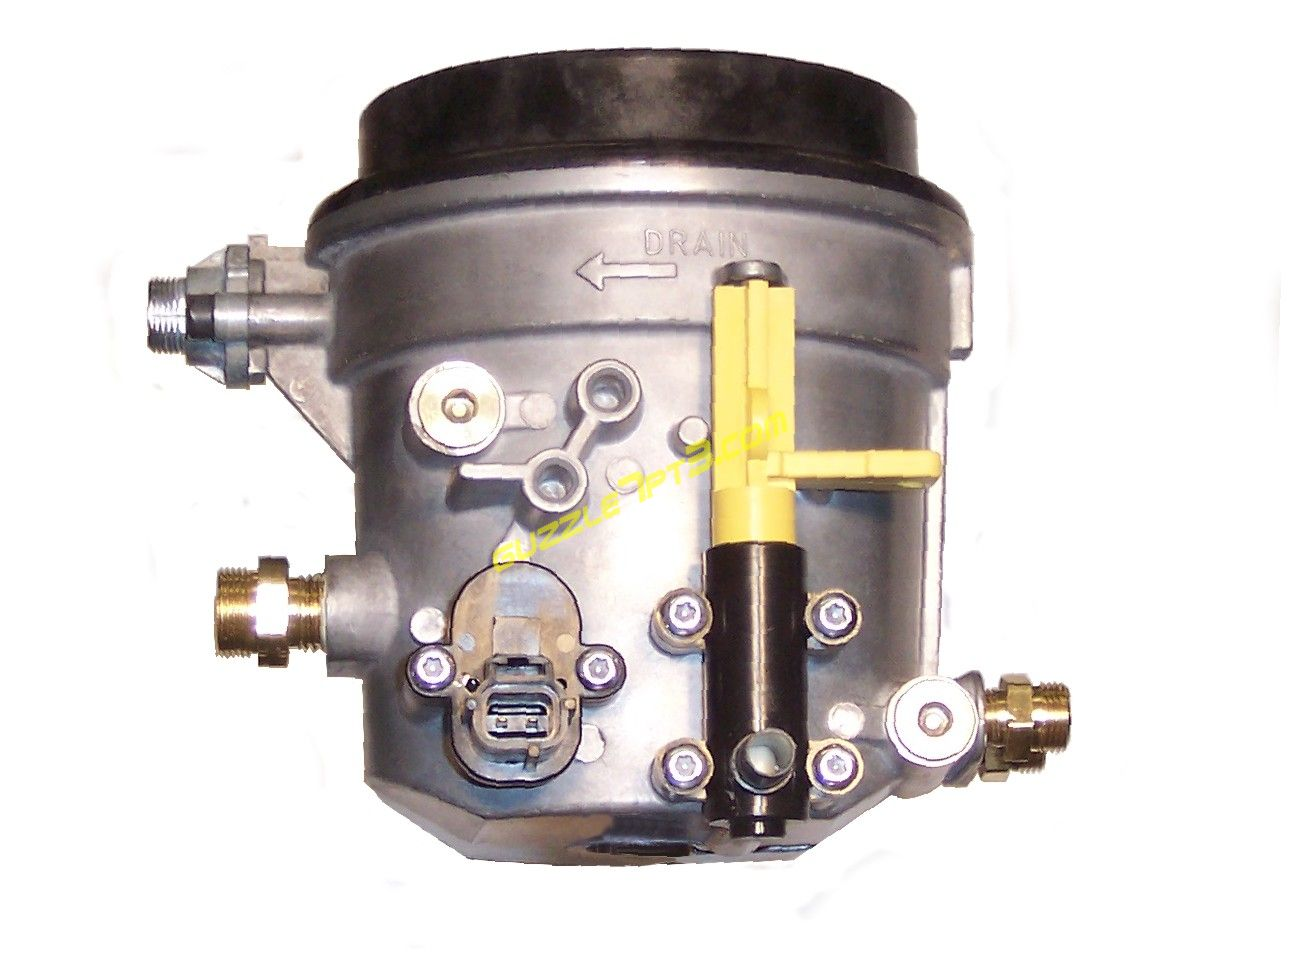 hight resolution of 1999 ford f350 7 3 fuel filter location basic electronics wiring1999 f350 7 3 fuel filter